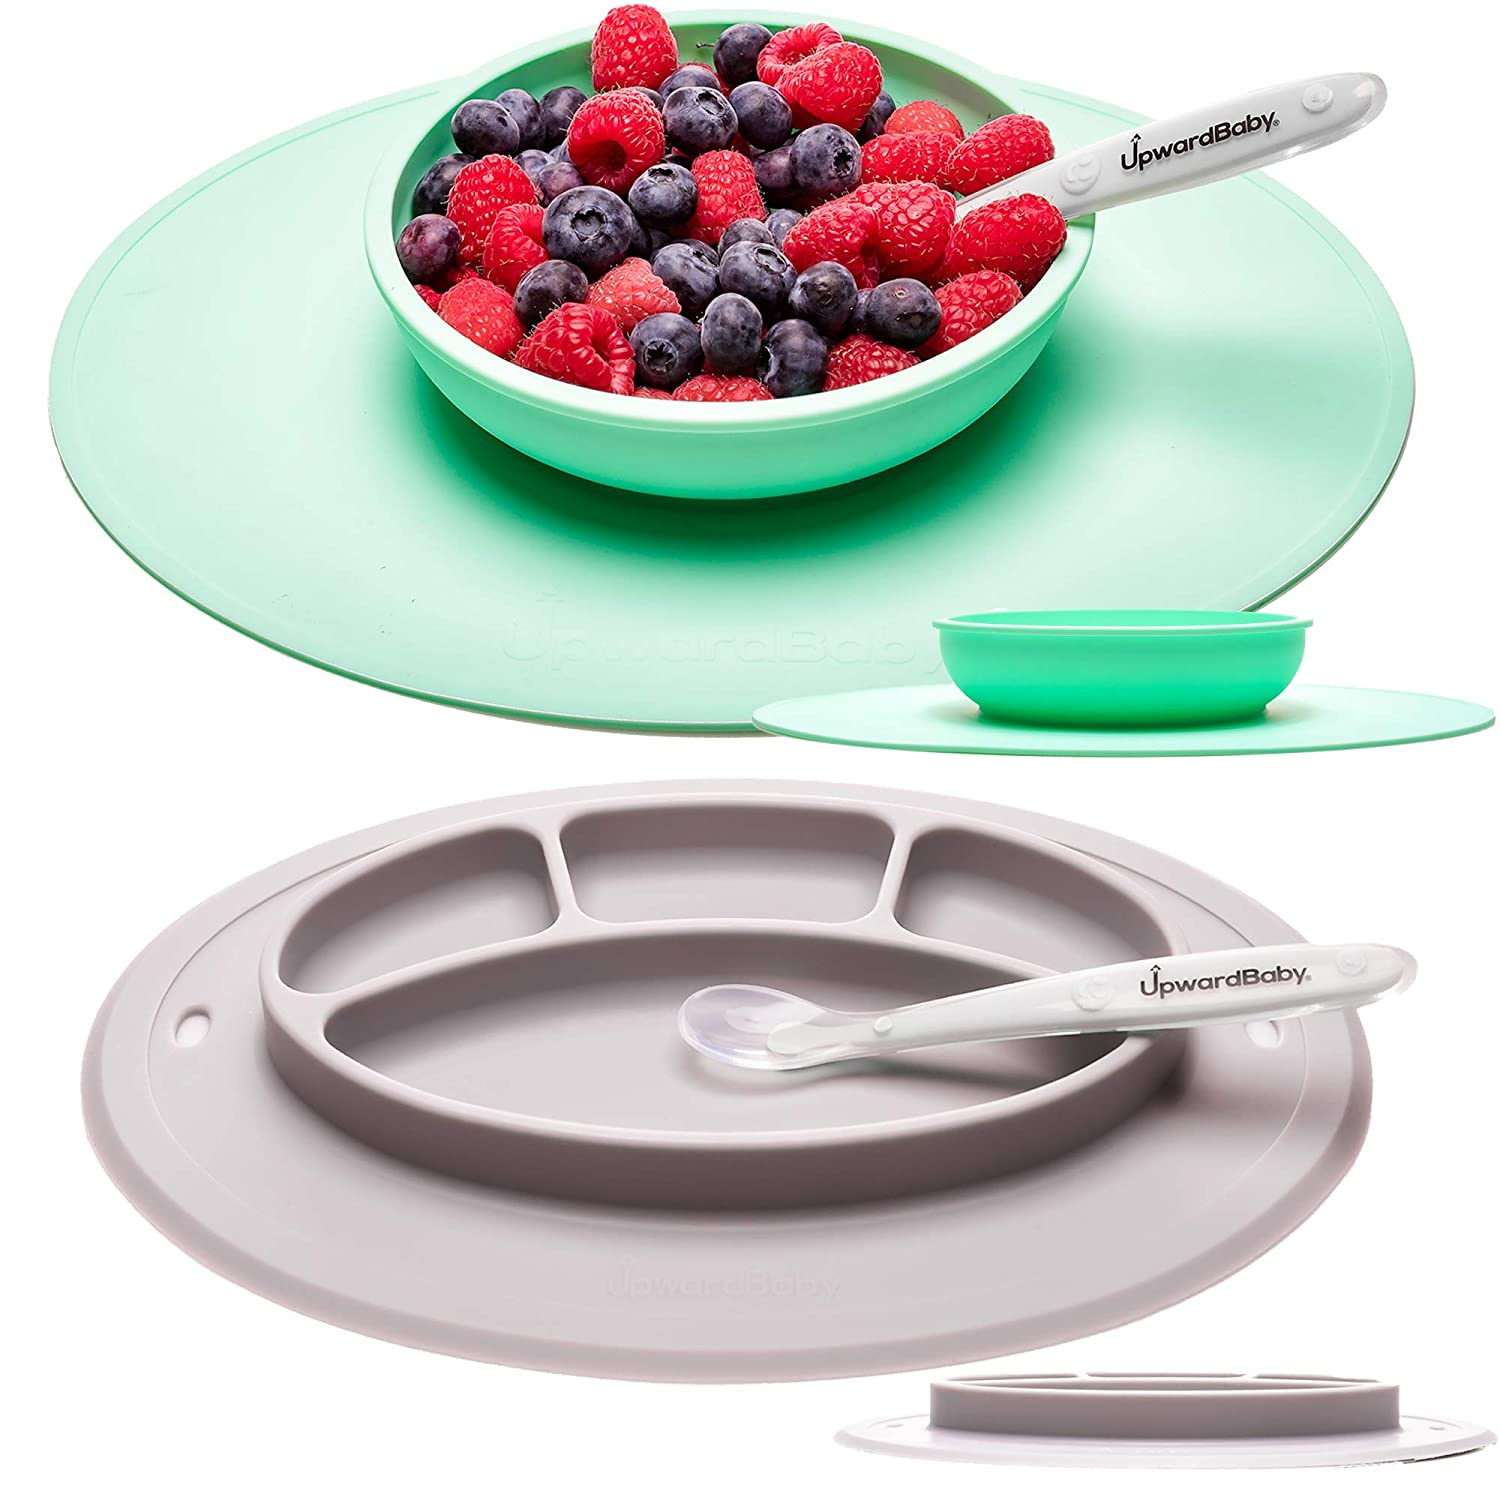 Suction Baby Plates and Bowls Set for Babies - UpwardBaby Silicone Non Slip Toddler Feeding Set Kids Placemats with Spoons Included - BPA Free